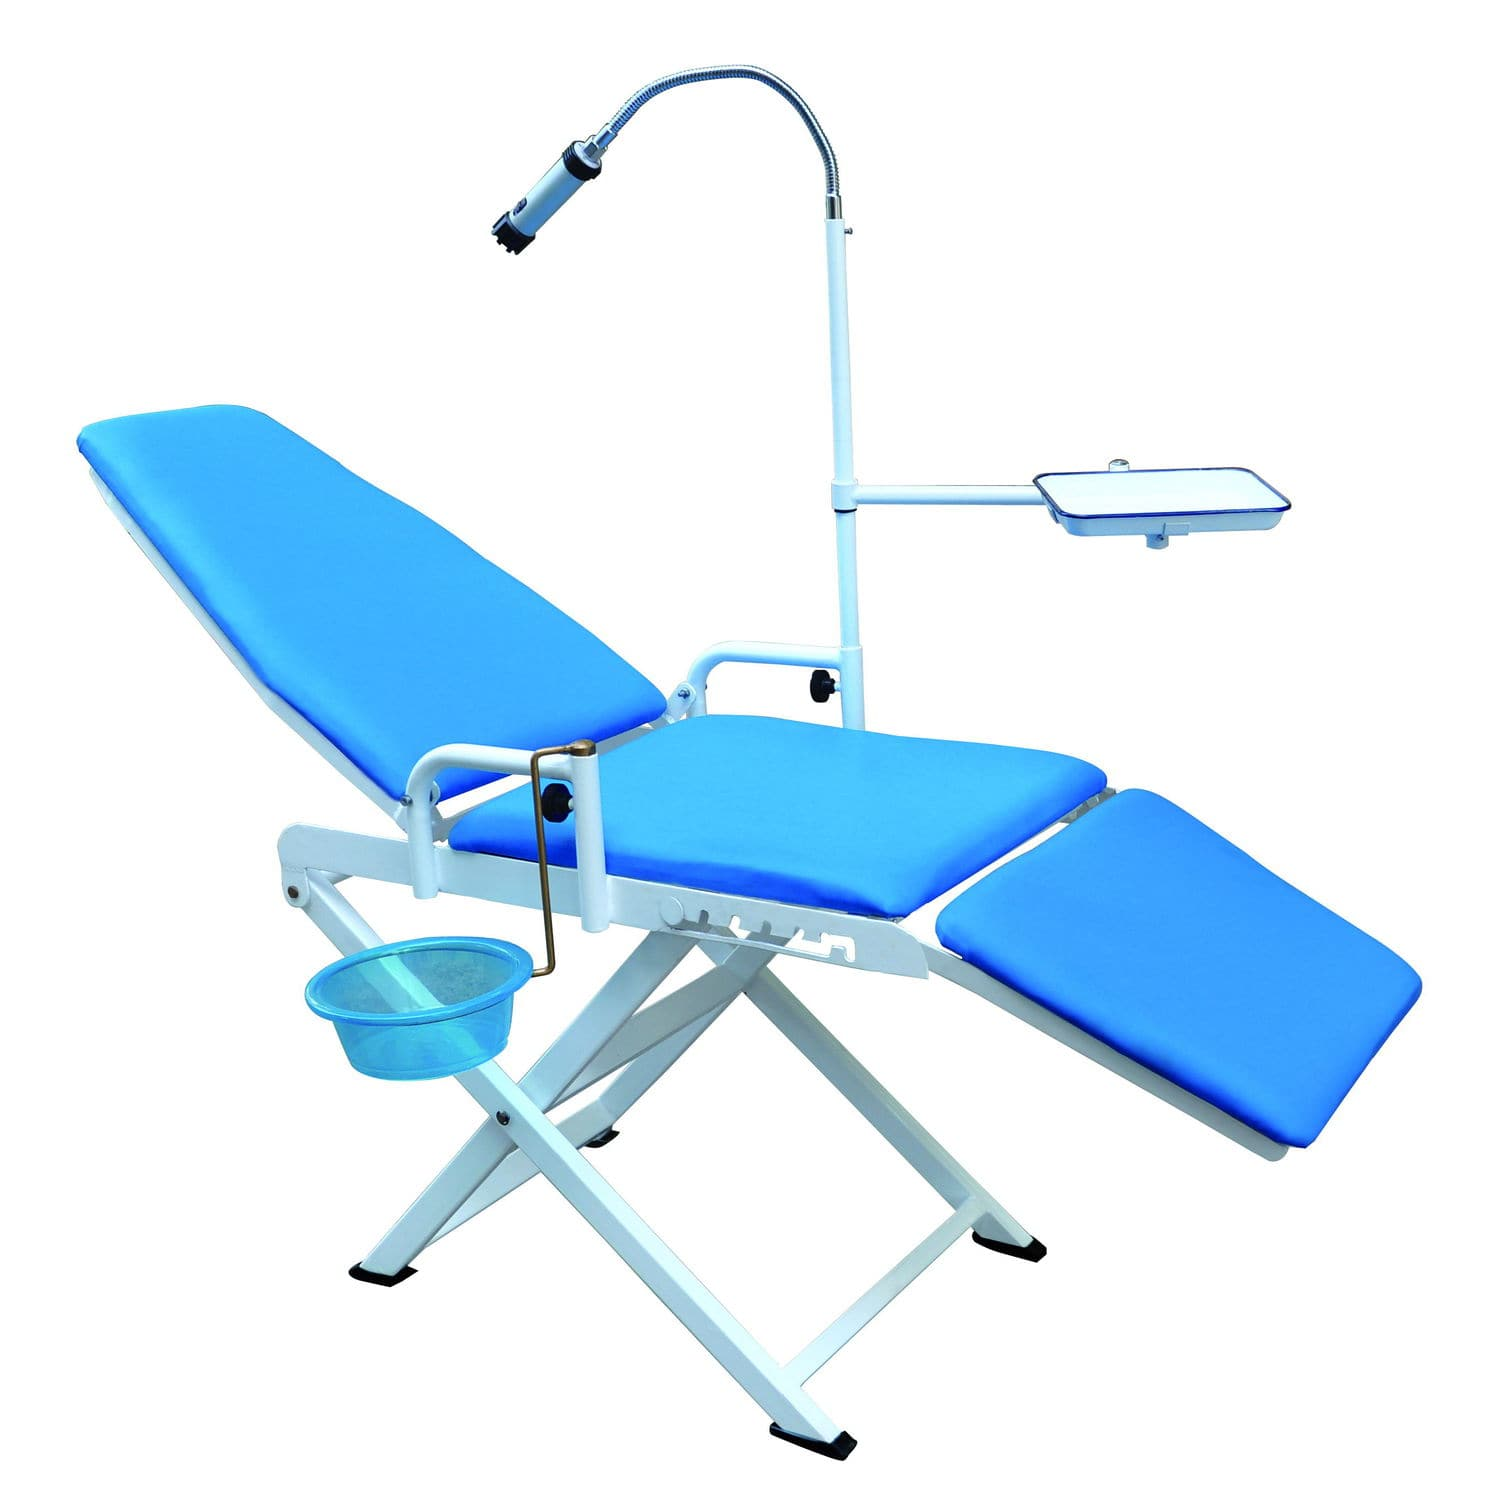 Portable Dental Chair Advantages